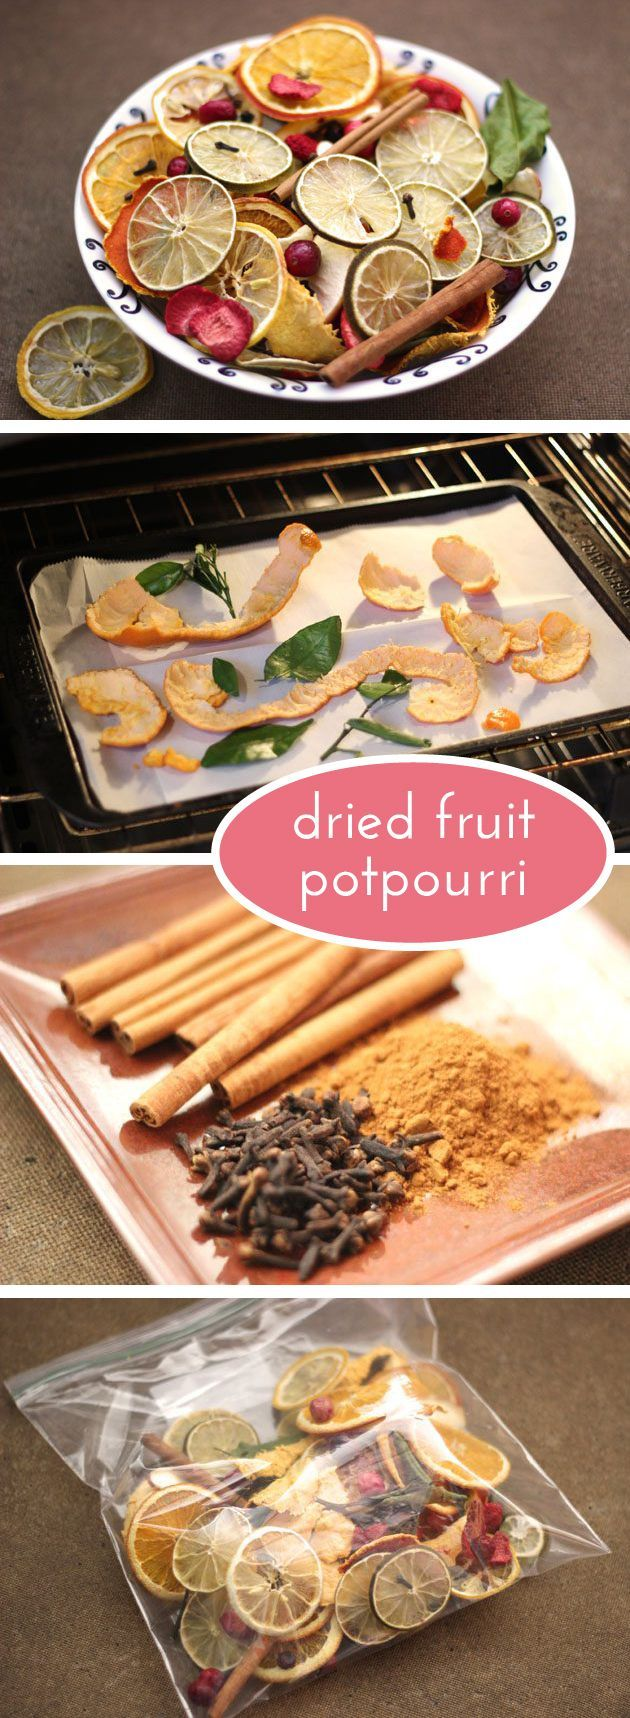 Potpourri Fai Da Te.How To Make Dried Fruit Potpourri Winter Decorations Natale Fai